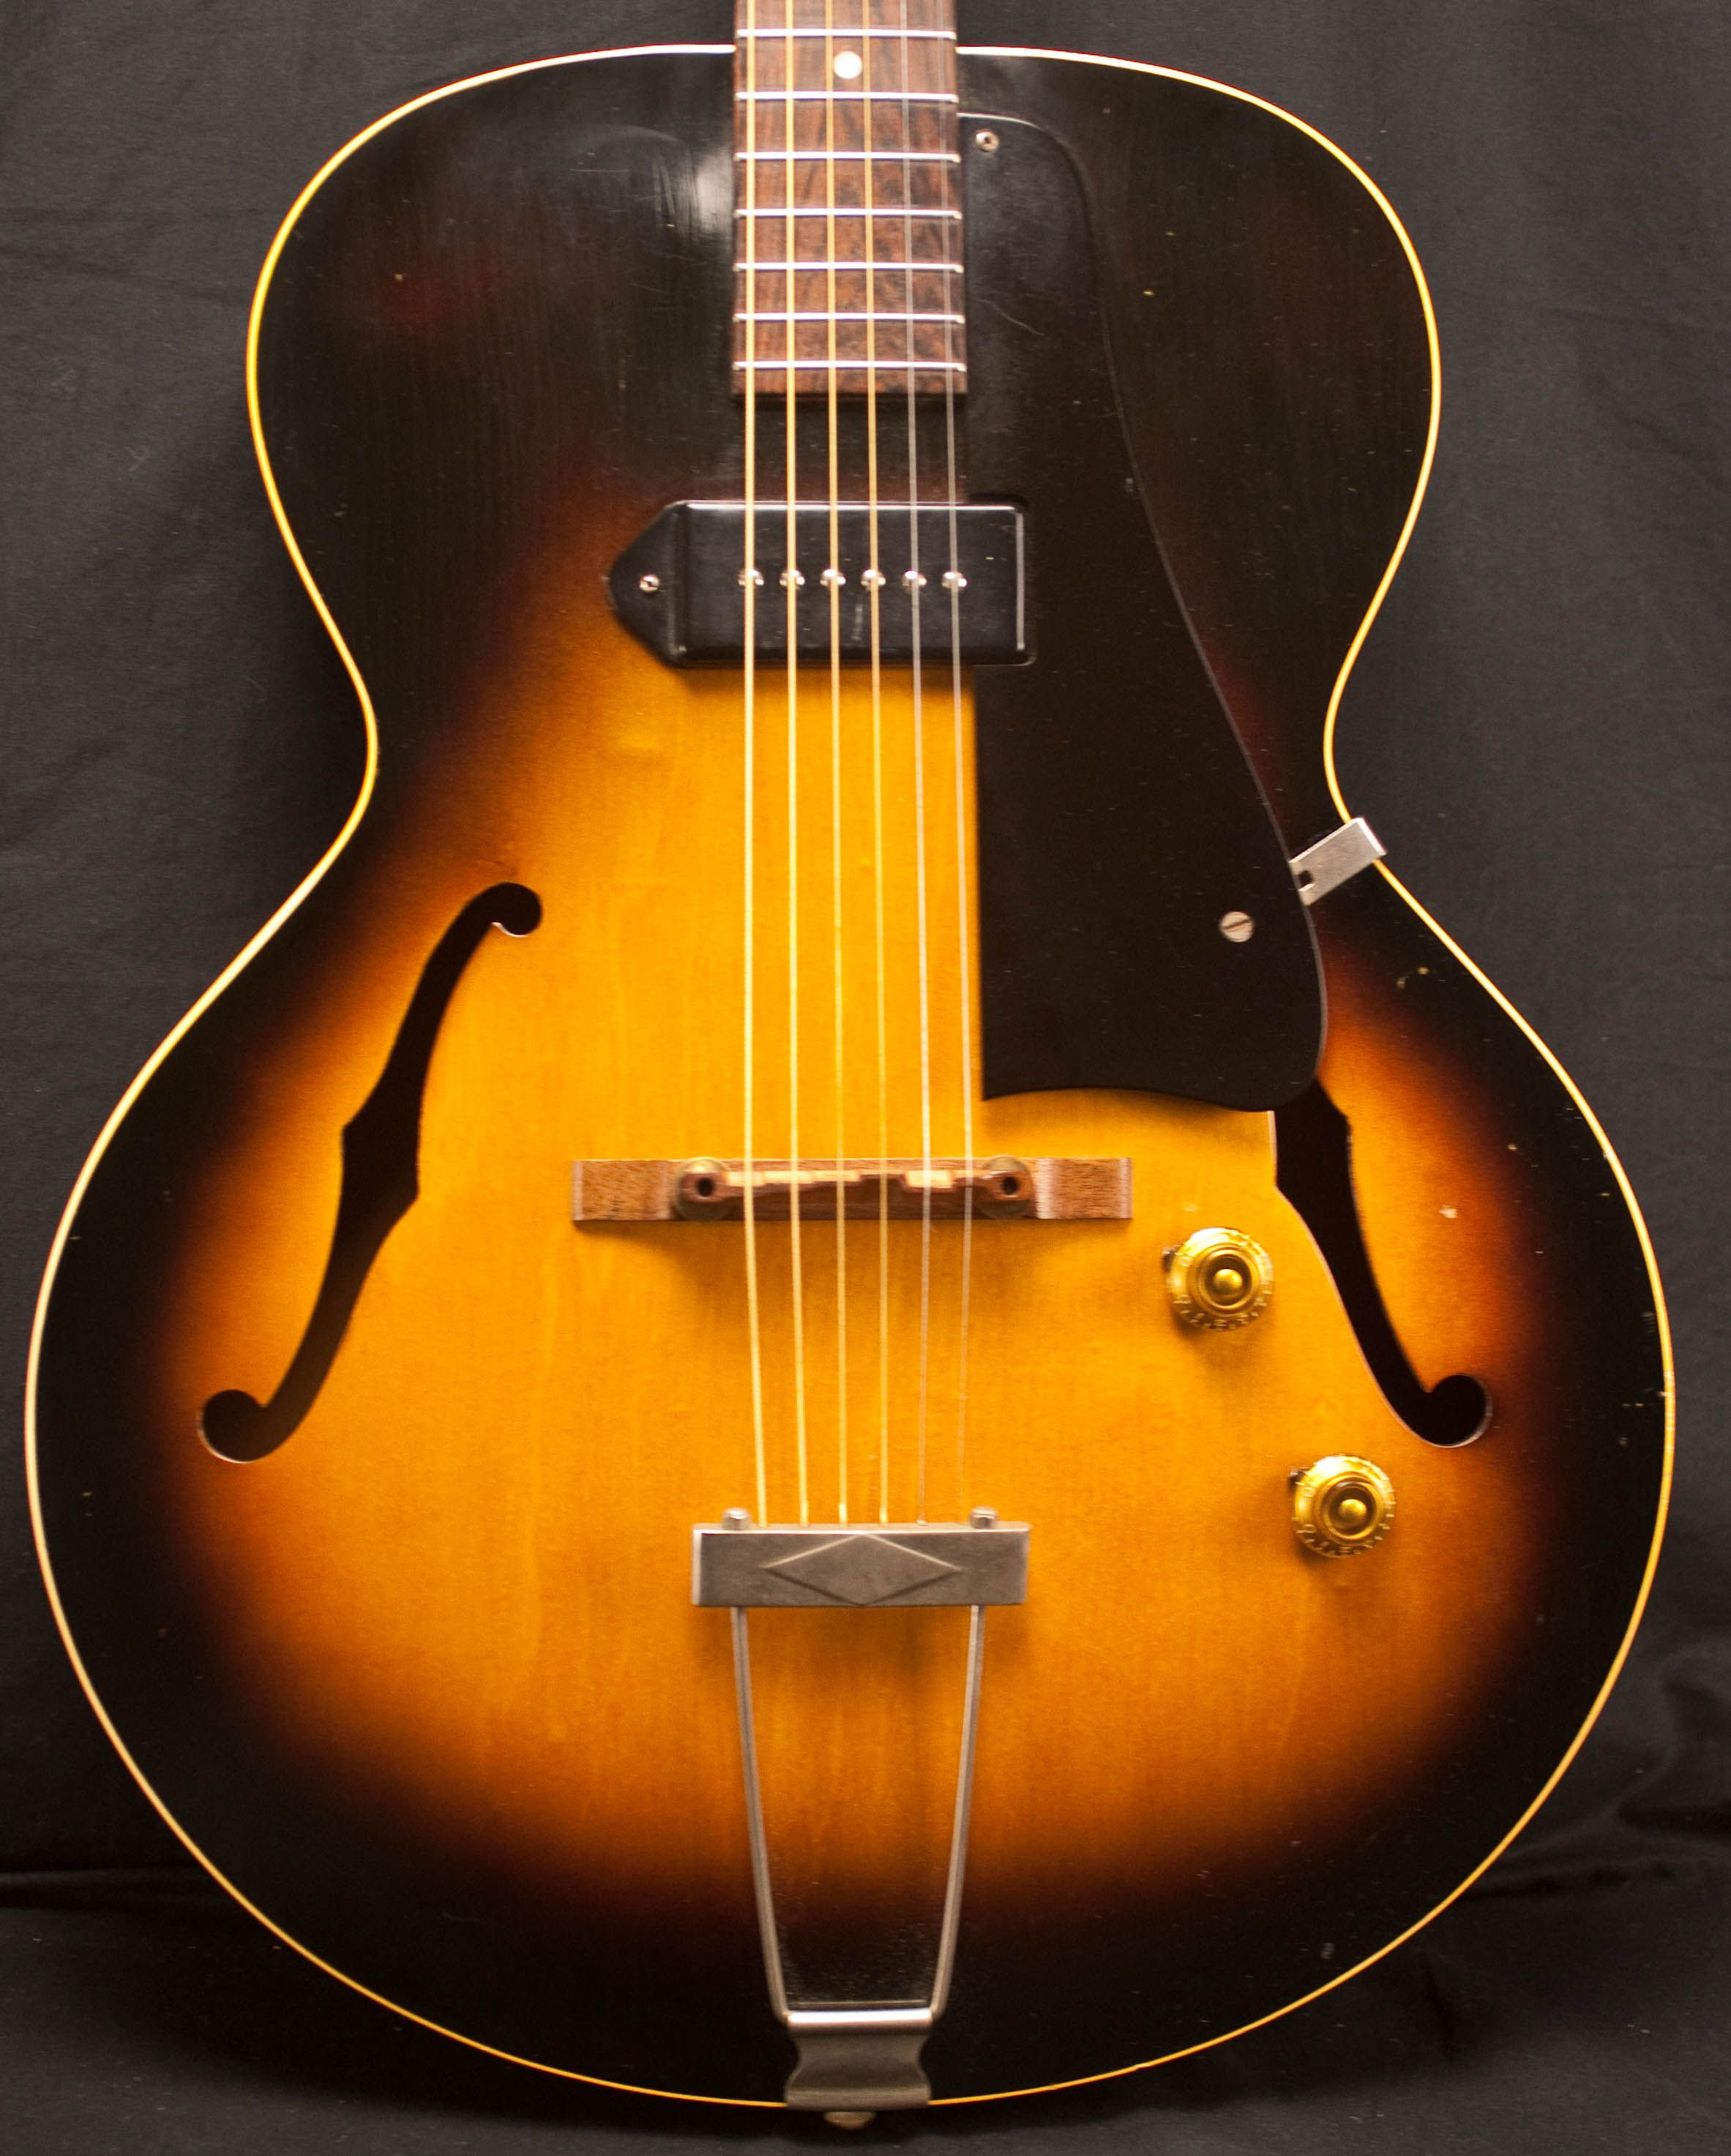 Gibson 1950 S Es125 Archtop Guitar Soundpure Com Guitar Vintage Electric Guitars Gibson Electric Guitar